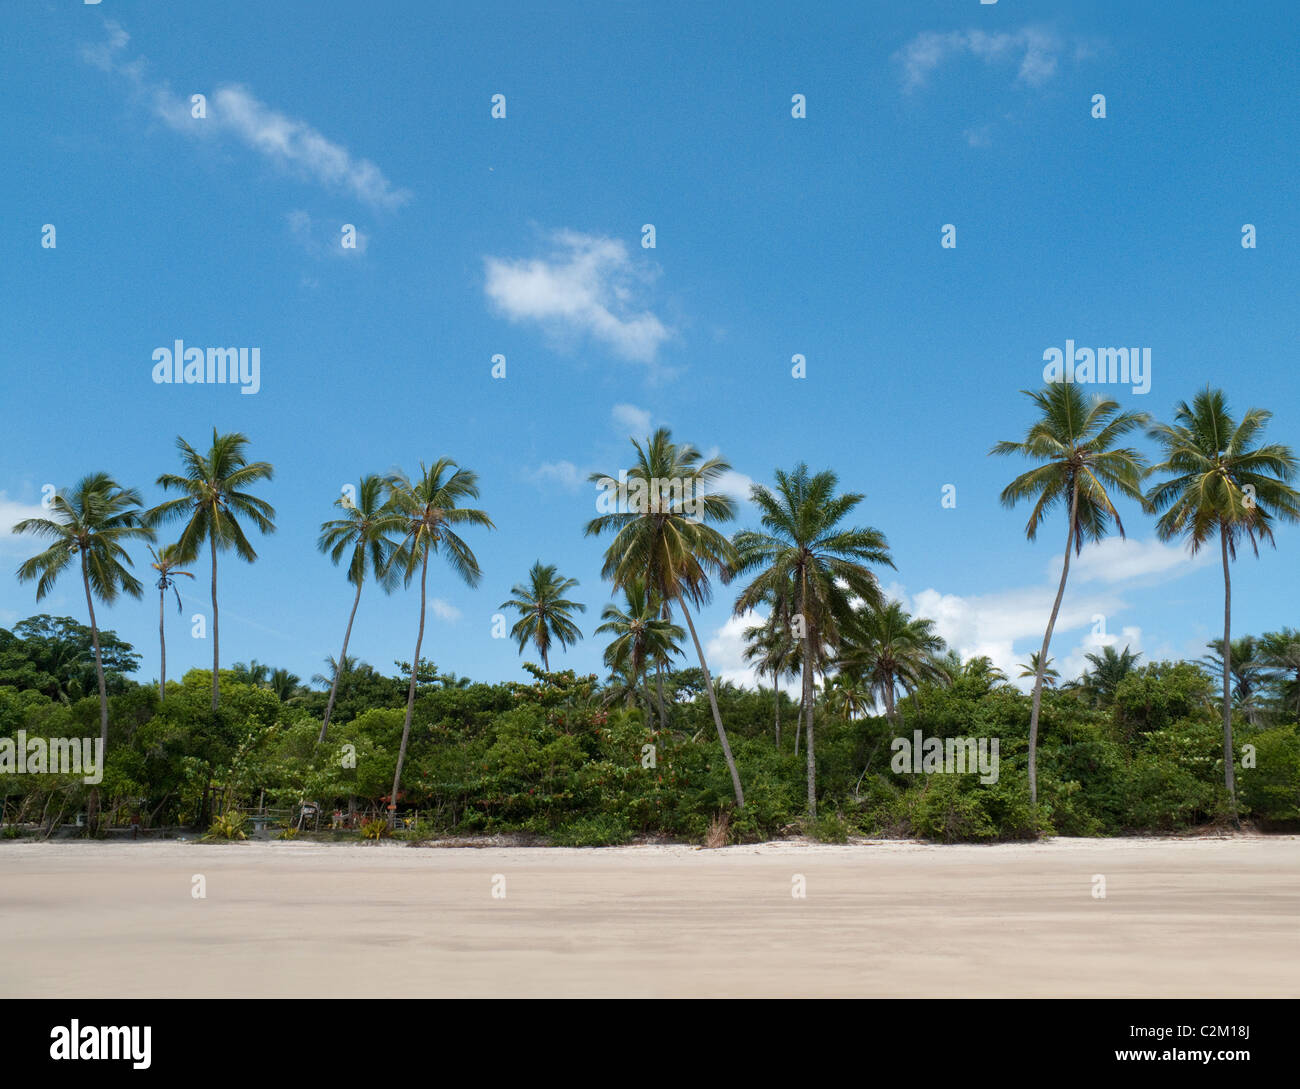 Palm trees on beach, Boipeba Island, Bahia, Brazil Stock Photo